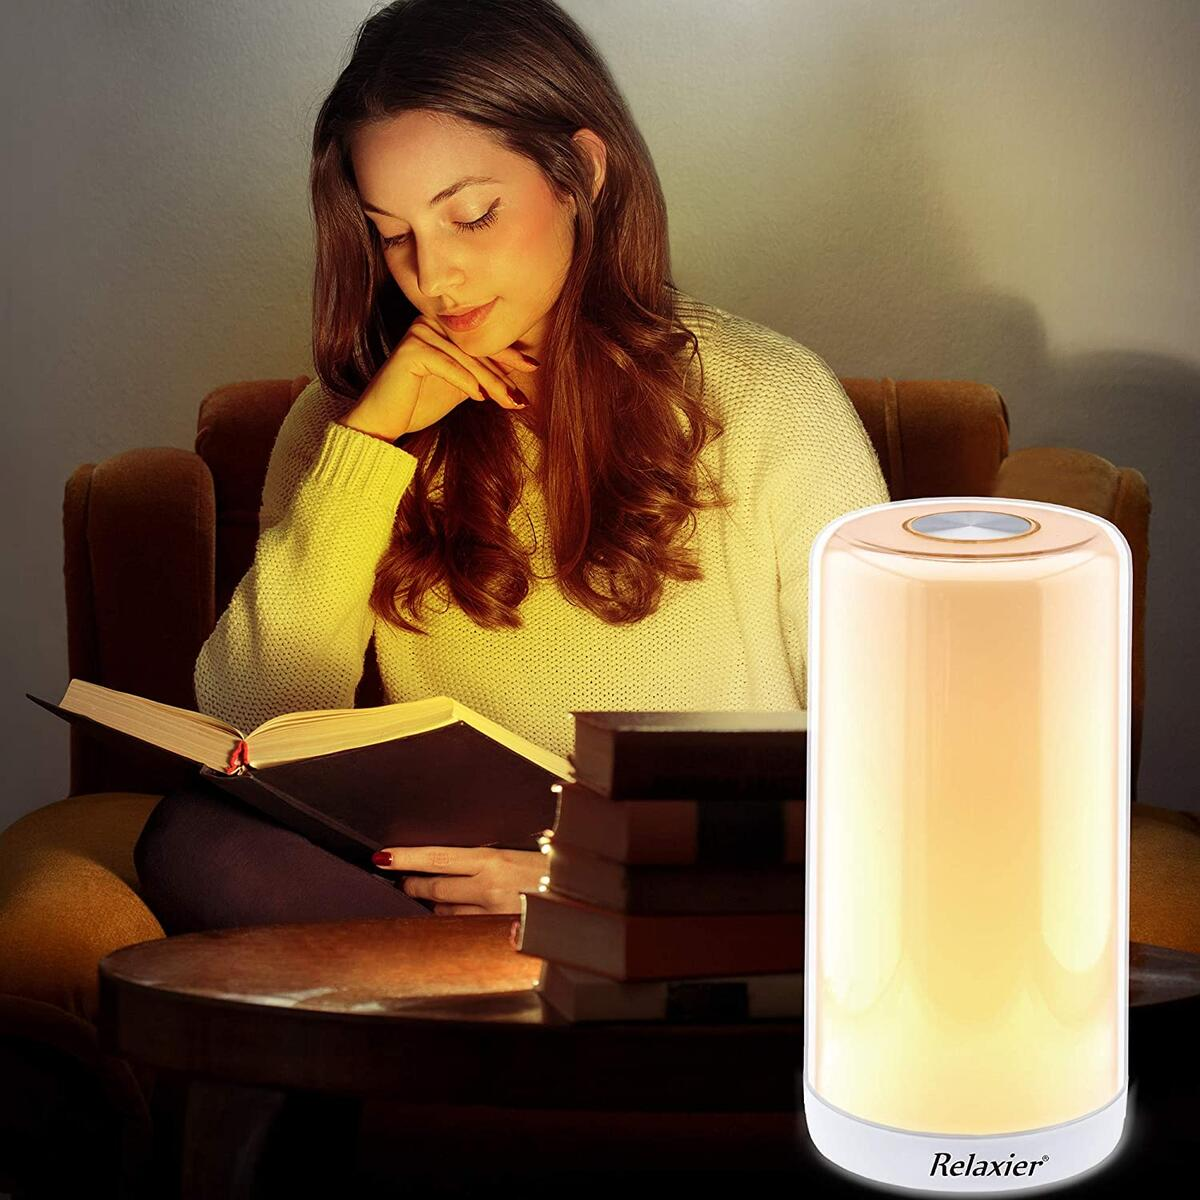 Relaxier Touch Control Dimmable LED Table Lamp